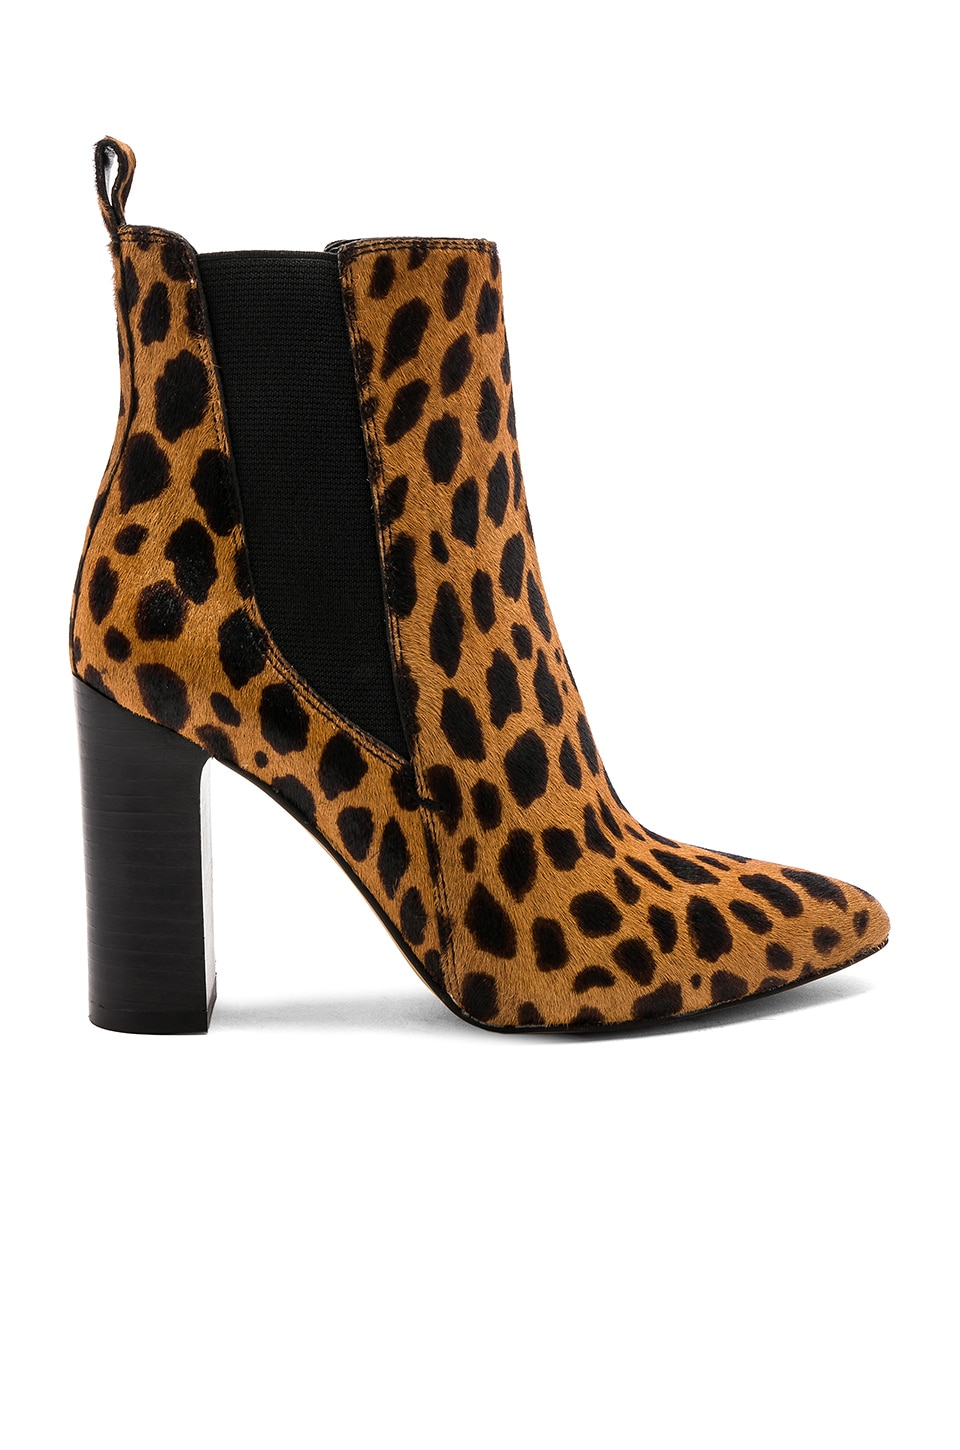 bec4d10c4d24 Vince Camuto Britsy 2 Cow Fur Bootie in Leopard | REVOLVE